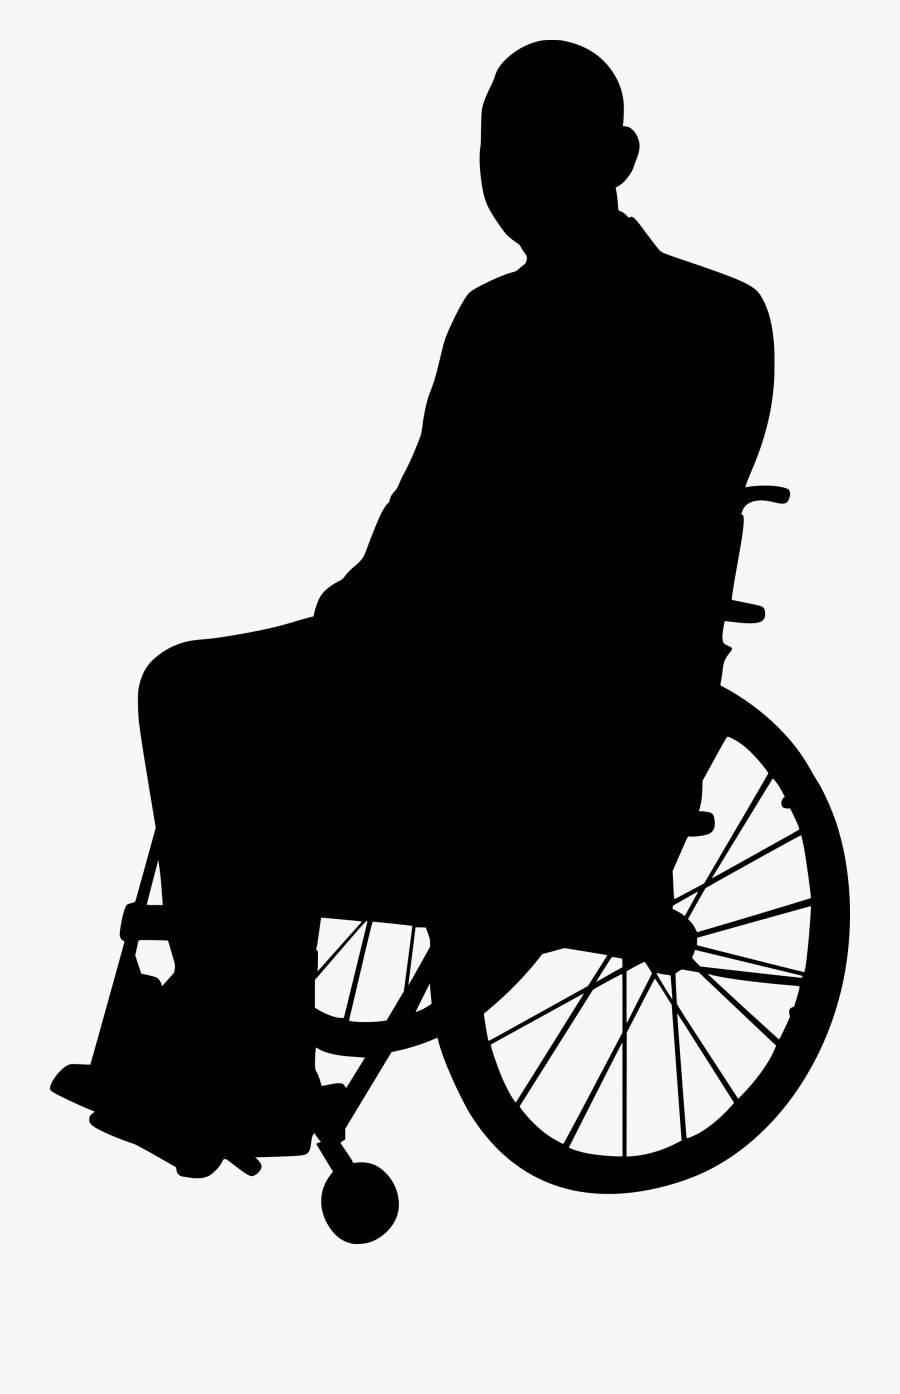 Disabled Png Clipart - Person In Wheelchair Silhouette Png, Transparent Clipart